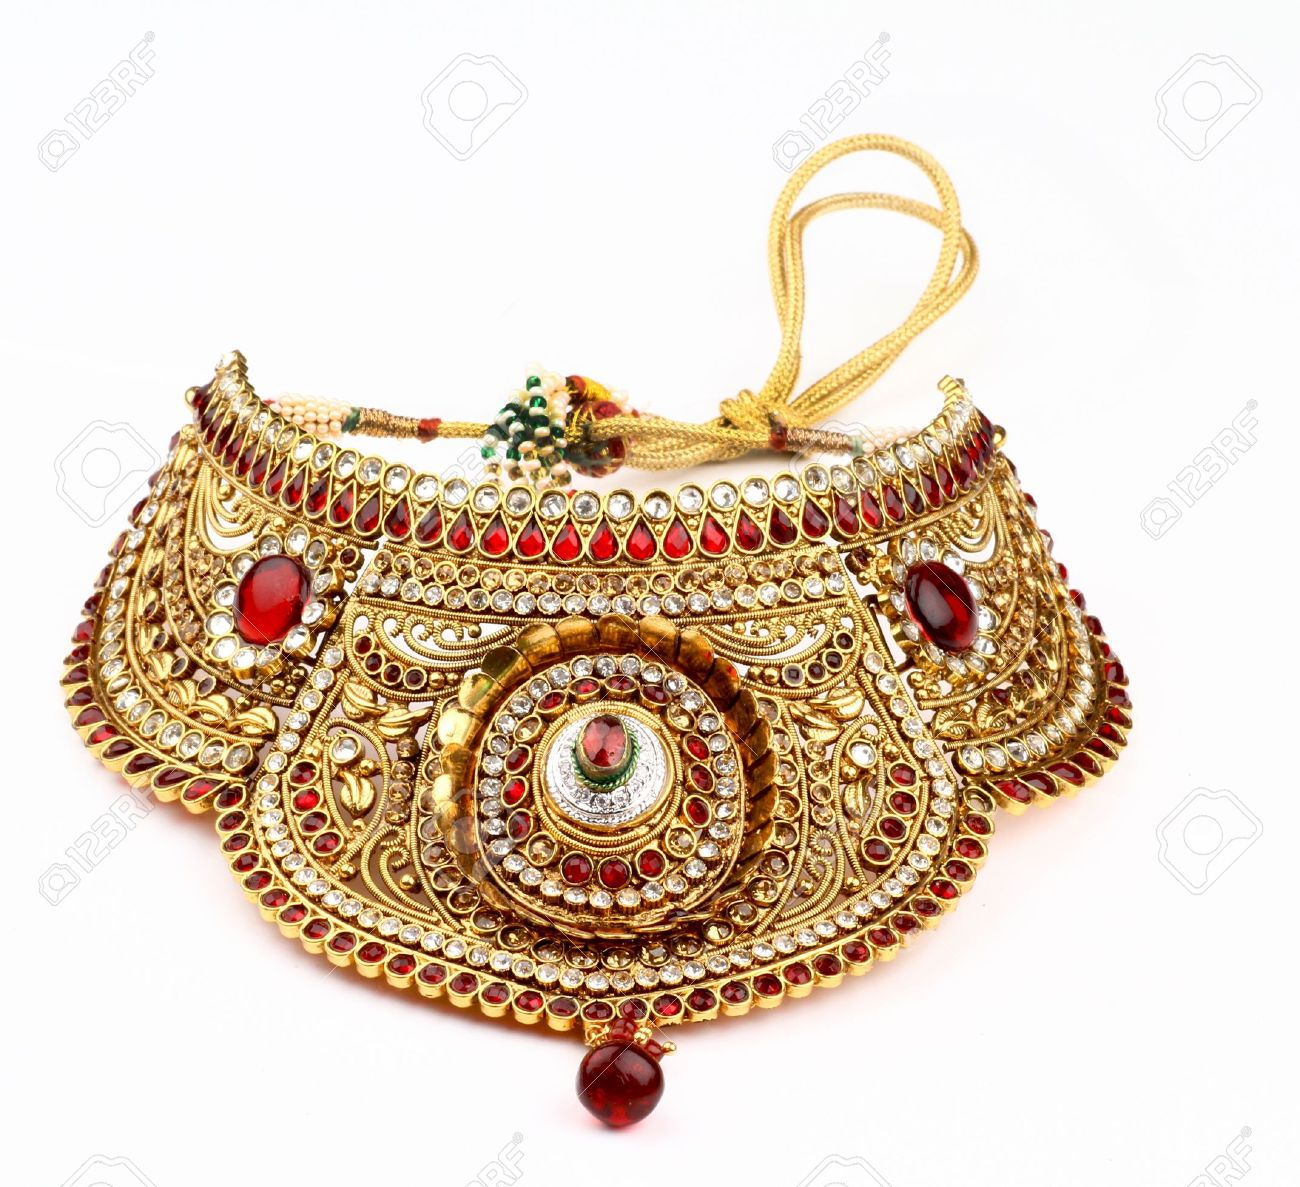 Indian jewelry isolated on a white background Stock Photo - 15168858